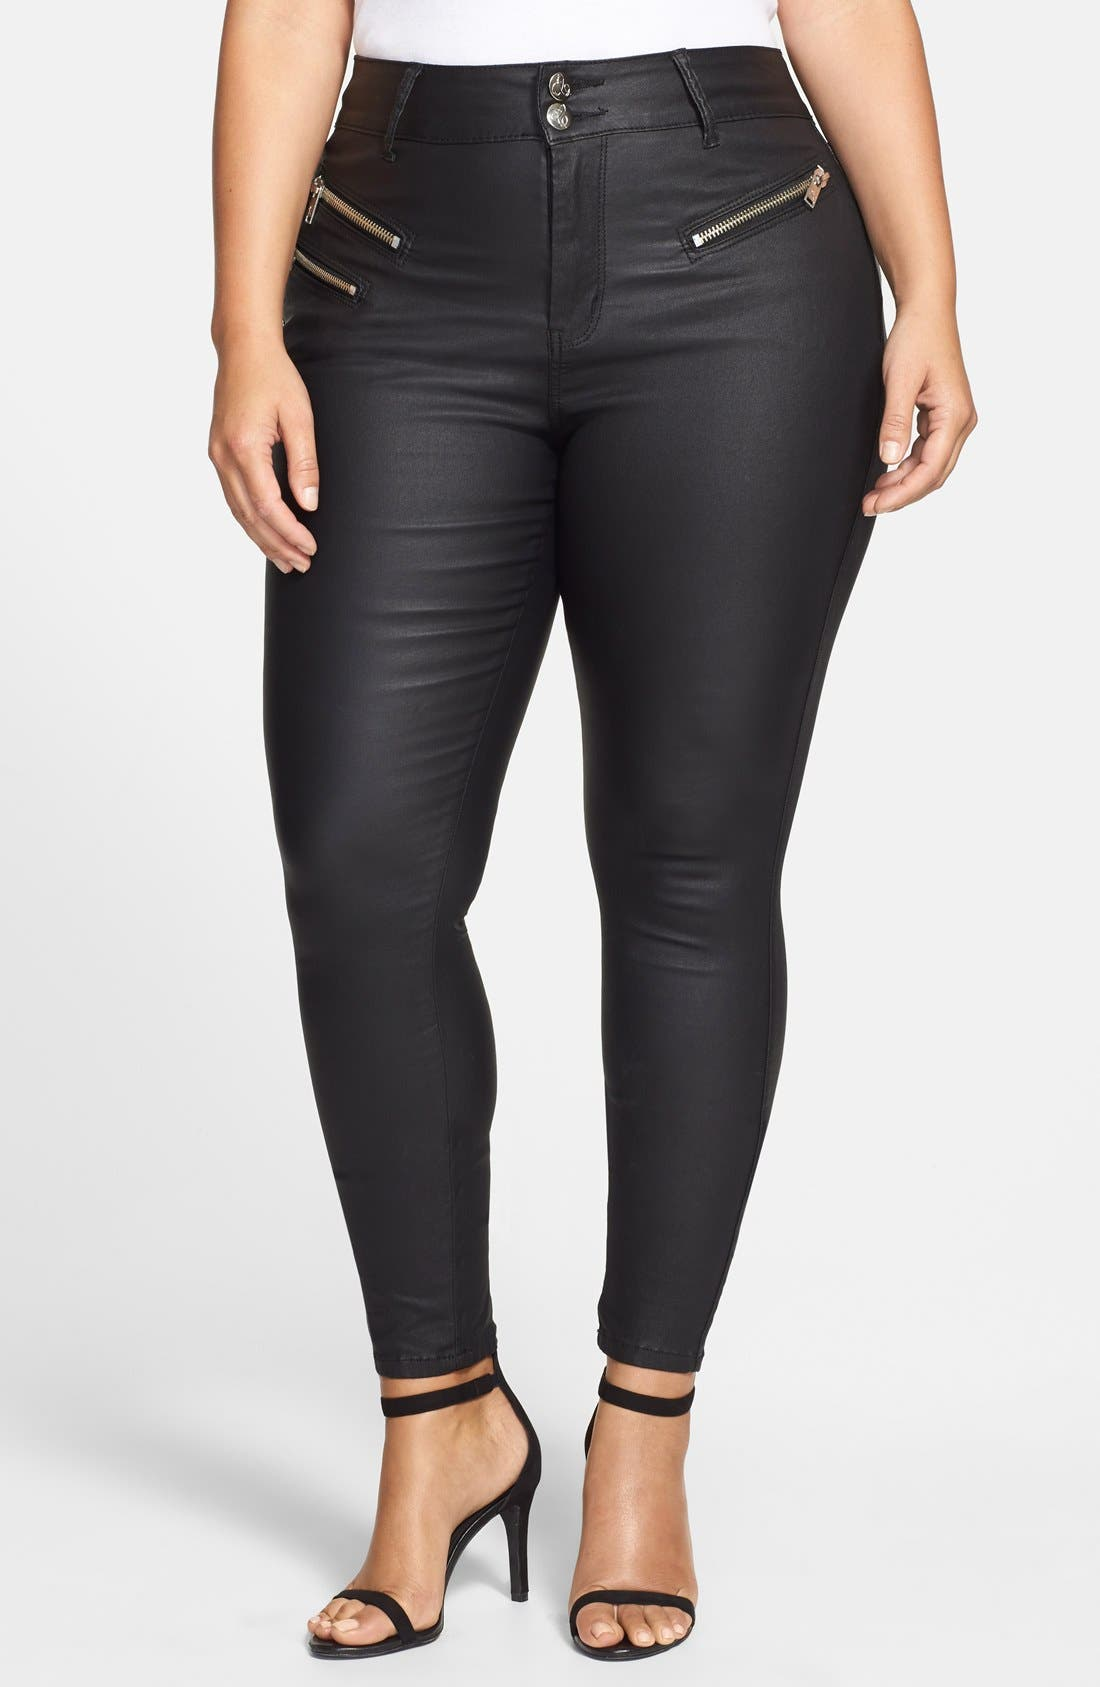 Alternate Image 1 Selected - City Chic 'Wet Look' Stretch Skinny Jeans (Black) (Plus Size)